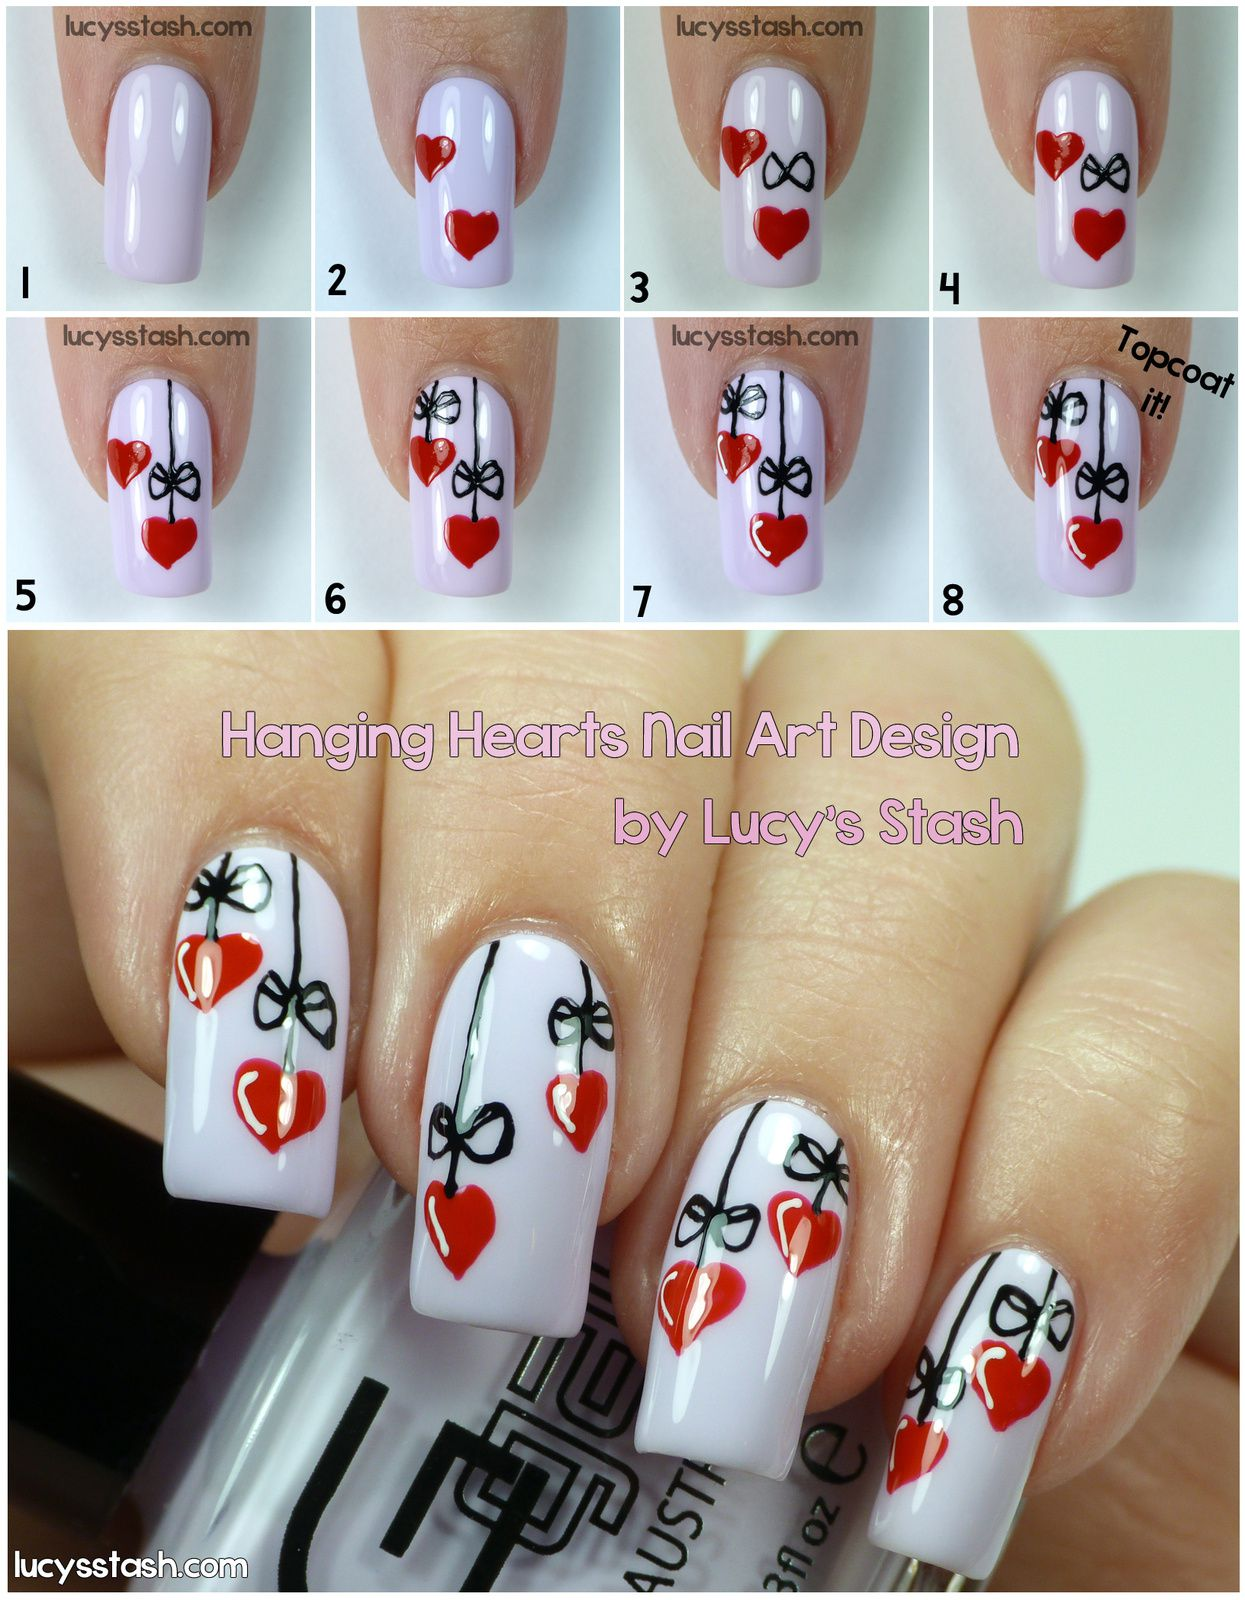 Hanging Hearts - Valentine's Day manicure with Tutorial